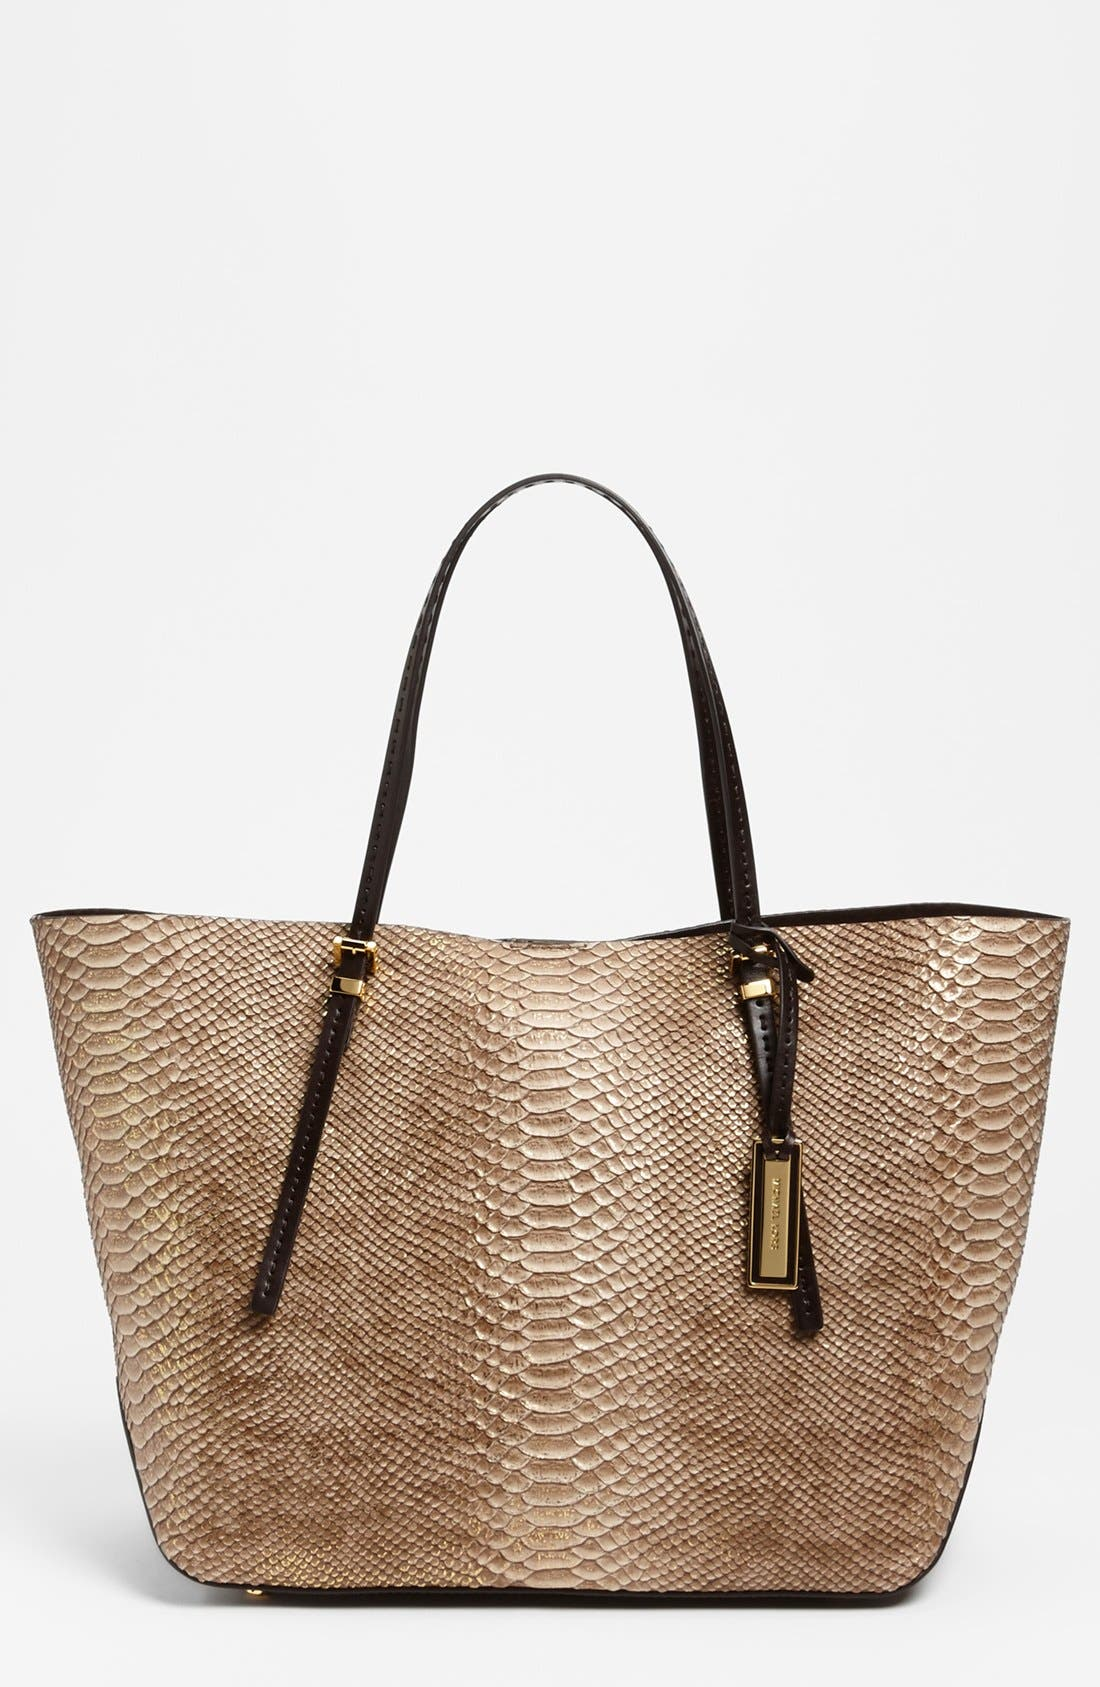 Alternate Image 1 Selected - Michael Kors 'Gia' Python Embossed Leather Tote, Large